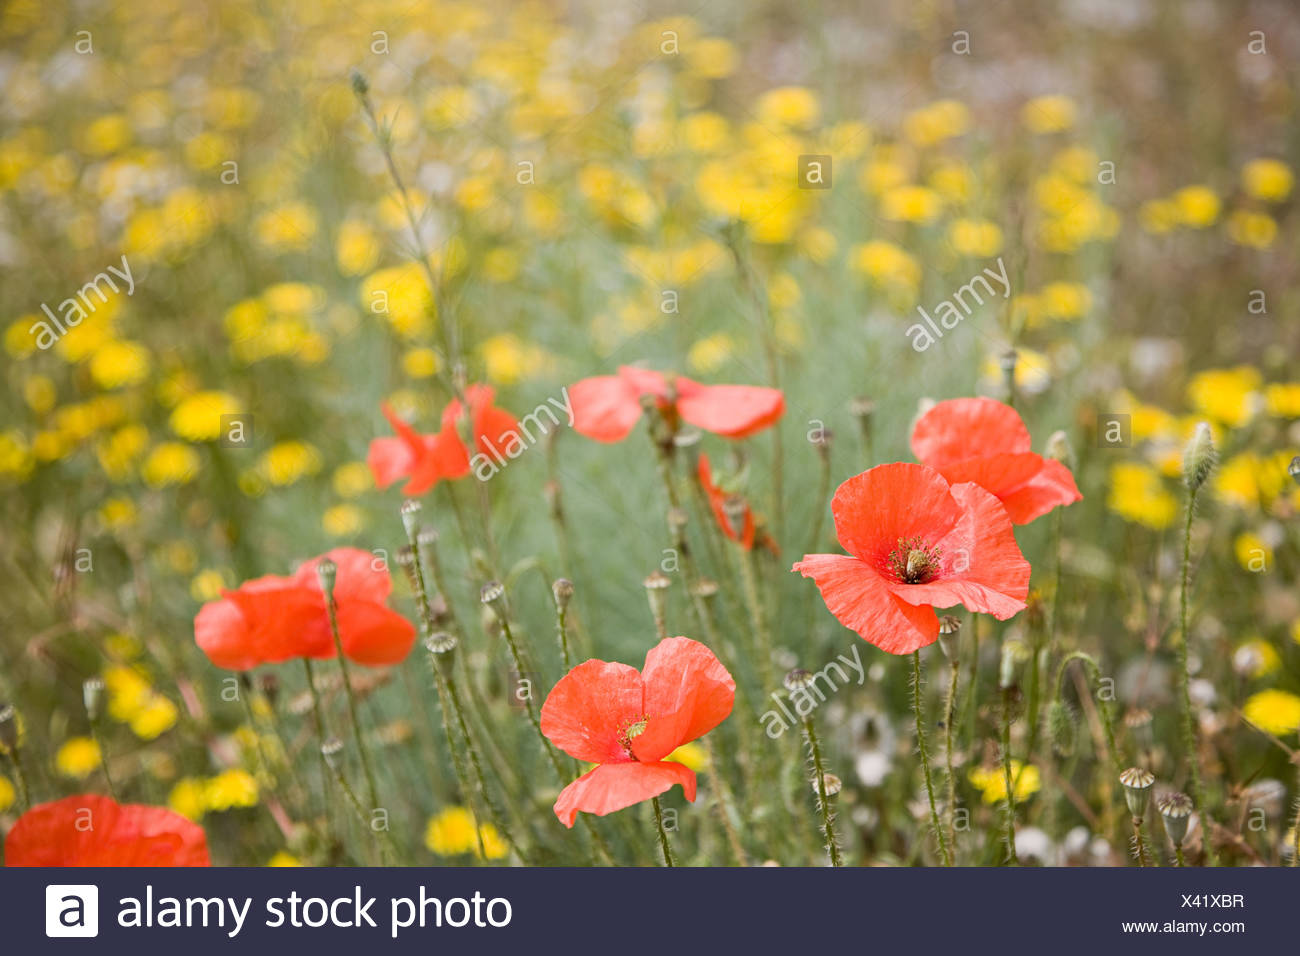 A field of poppies - Stock Image